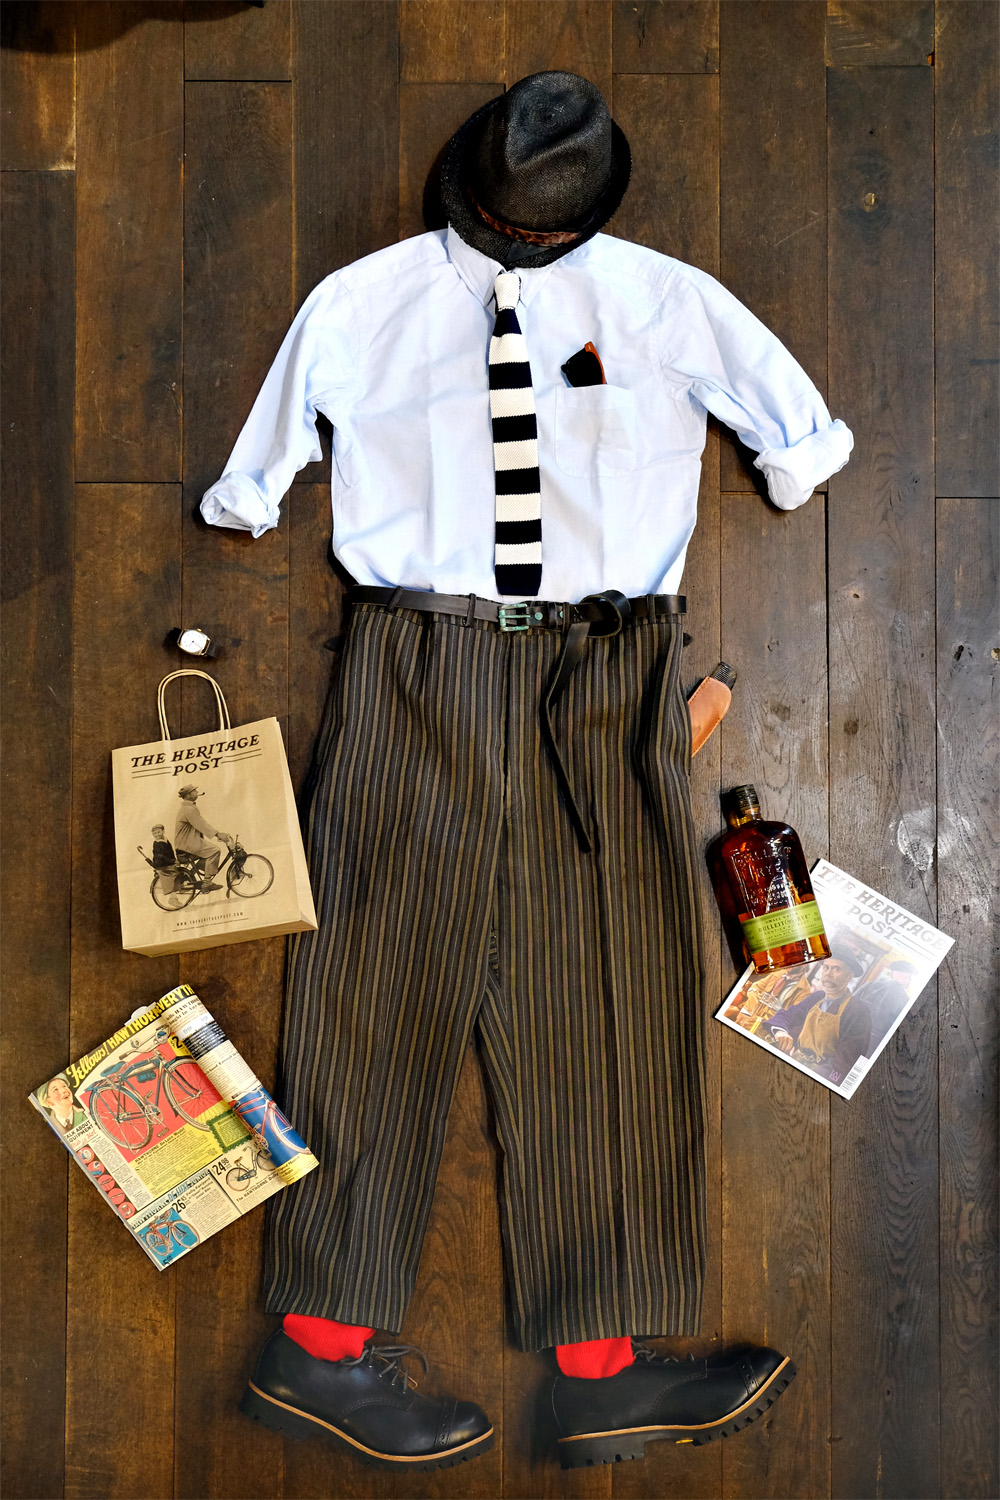 outfit-der-woche-kenneth-field-hemd-vintage-stresemann-hose-interbrigade-pepe-rotesocken-moveroma-theheritagepost-bulleit-whiskey